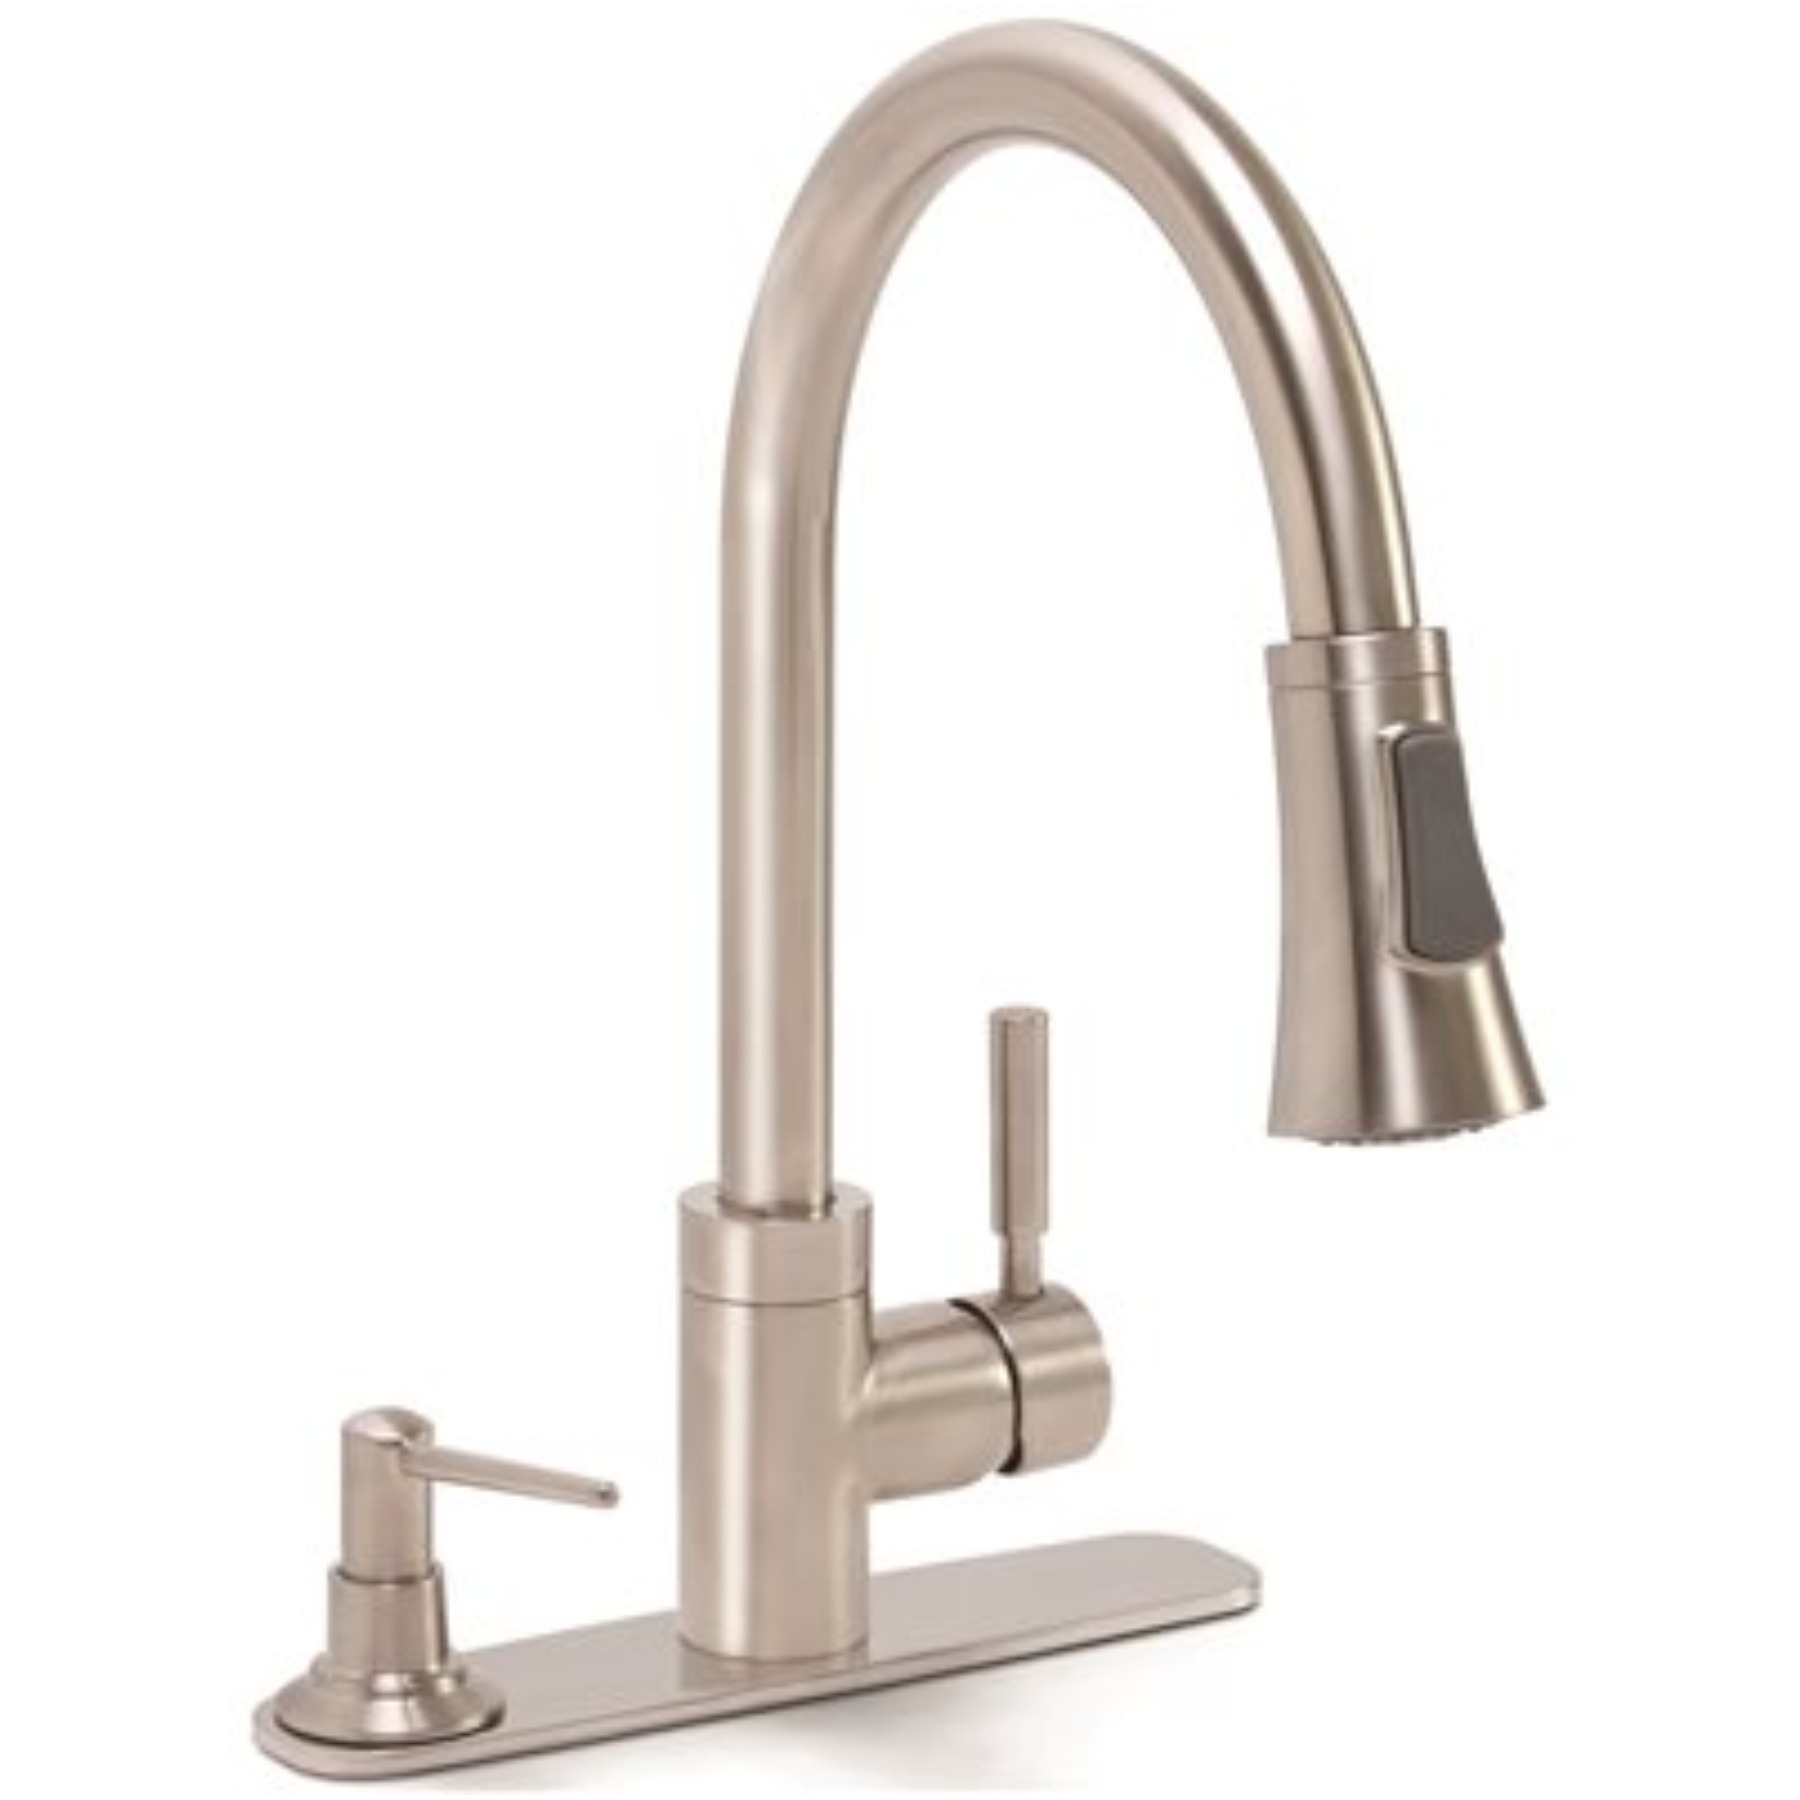 ESSEN� KITCHEN FAUCET WITH PULL DOWN SPOUT, SINGLE METAL LEVER HANDLE, AND ON DECK SOAP DISPENSER, BRUSHED NICKEL